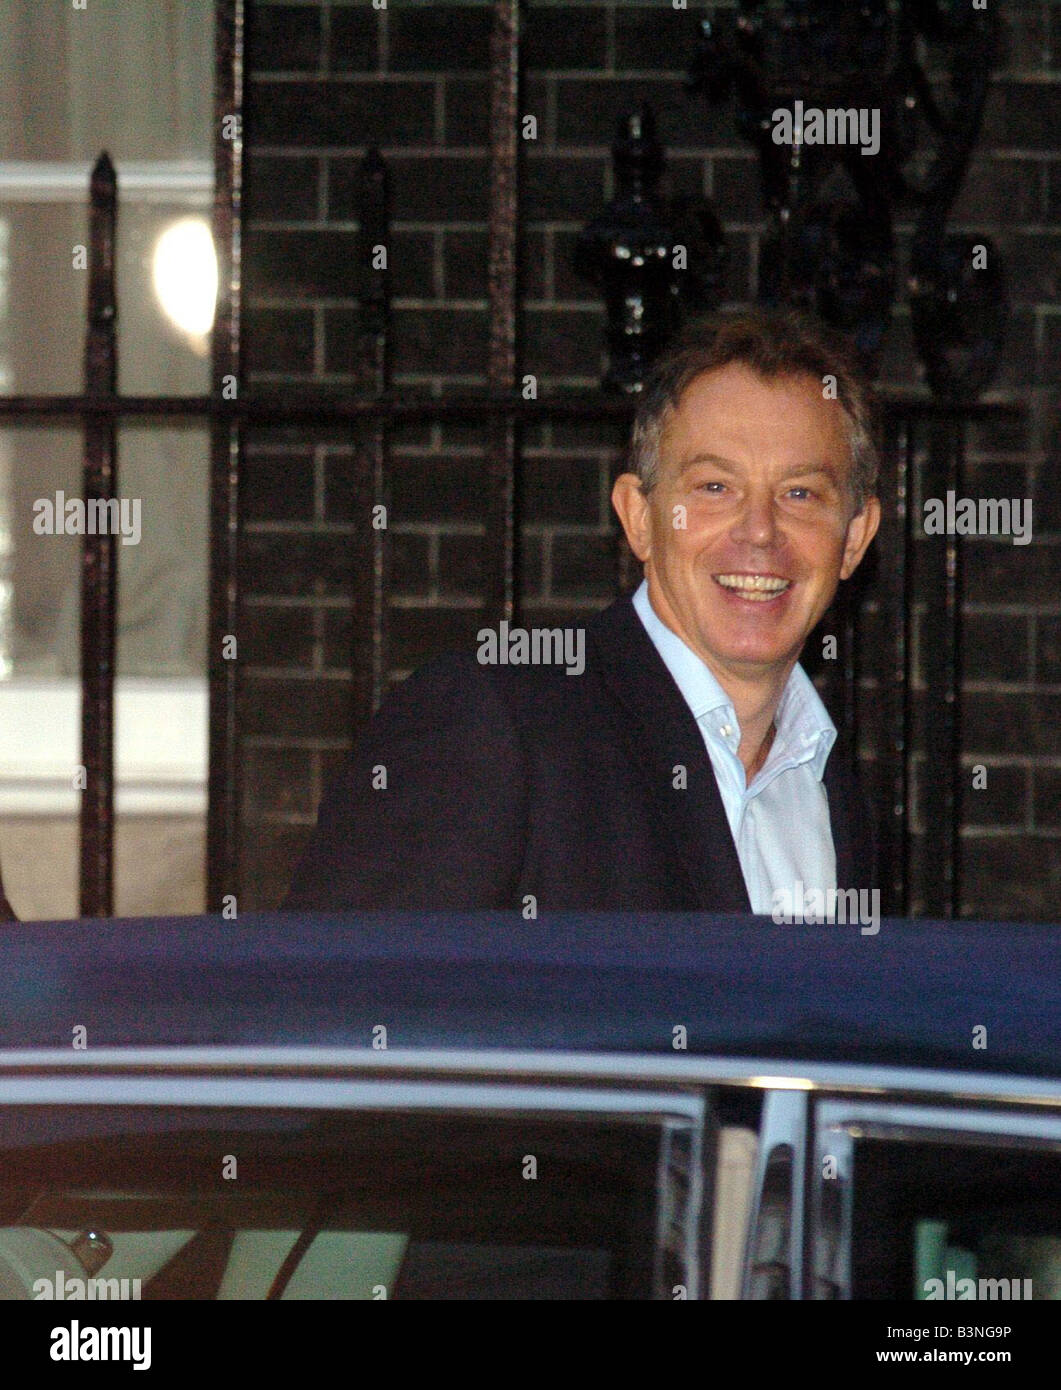 Tony and Cherie Blair leave Downing Street for Hammersmith Hospital where Tony Blair is having his heart operation - Stock Image